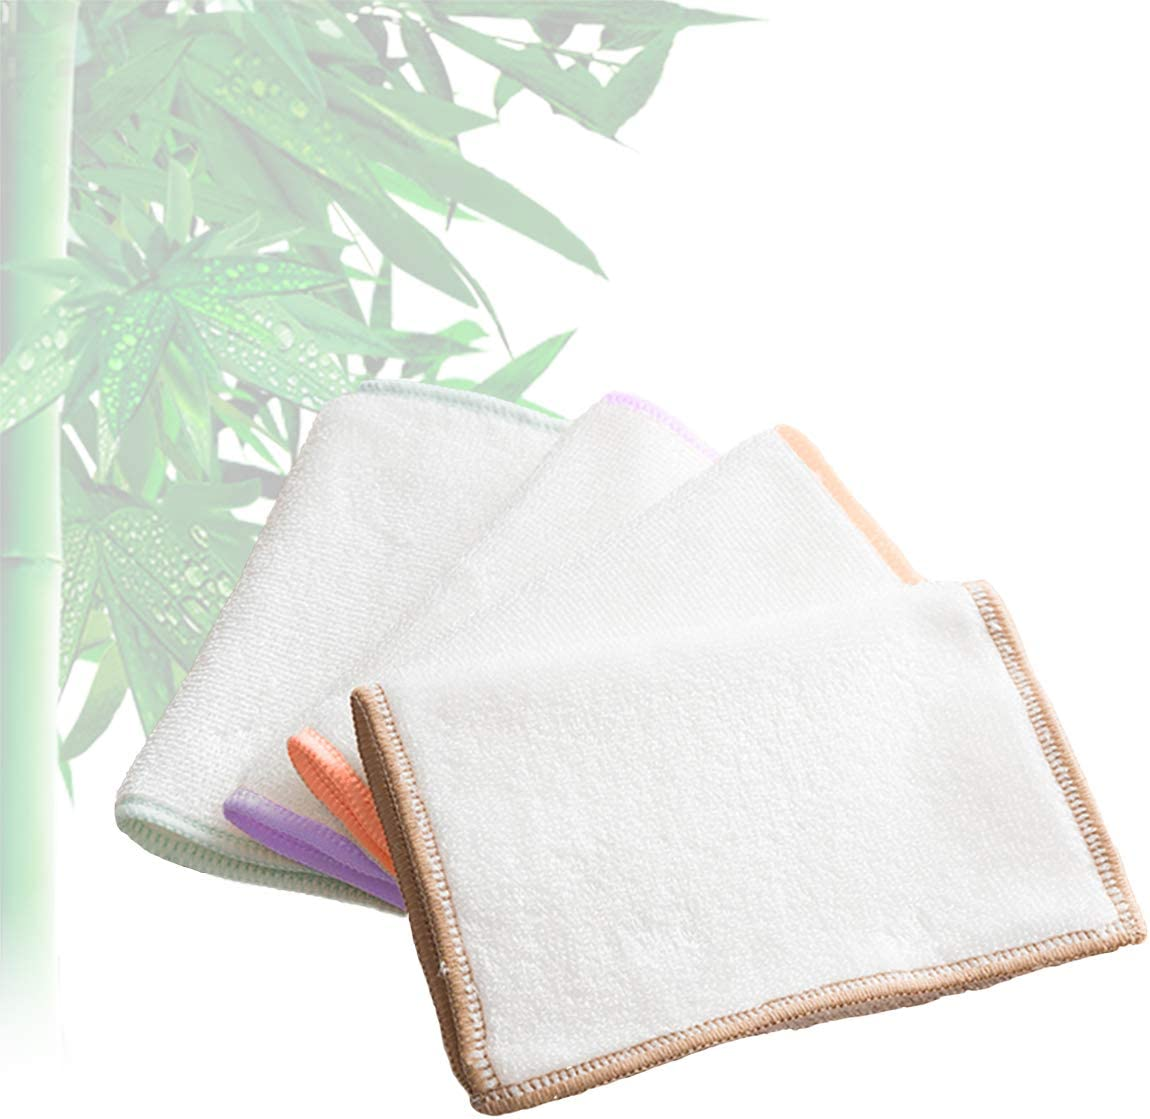 KMAKII 8 Pack 100% Bamboo Kitchen Dish Cloths Dish Rags & Kitchen Cleaning Cloths Odor Free,Washable, Absorbent, Sustainable, Durable 10.2x10.2 inches